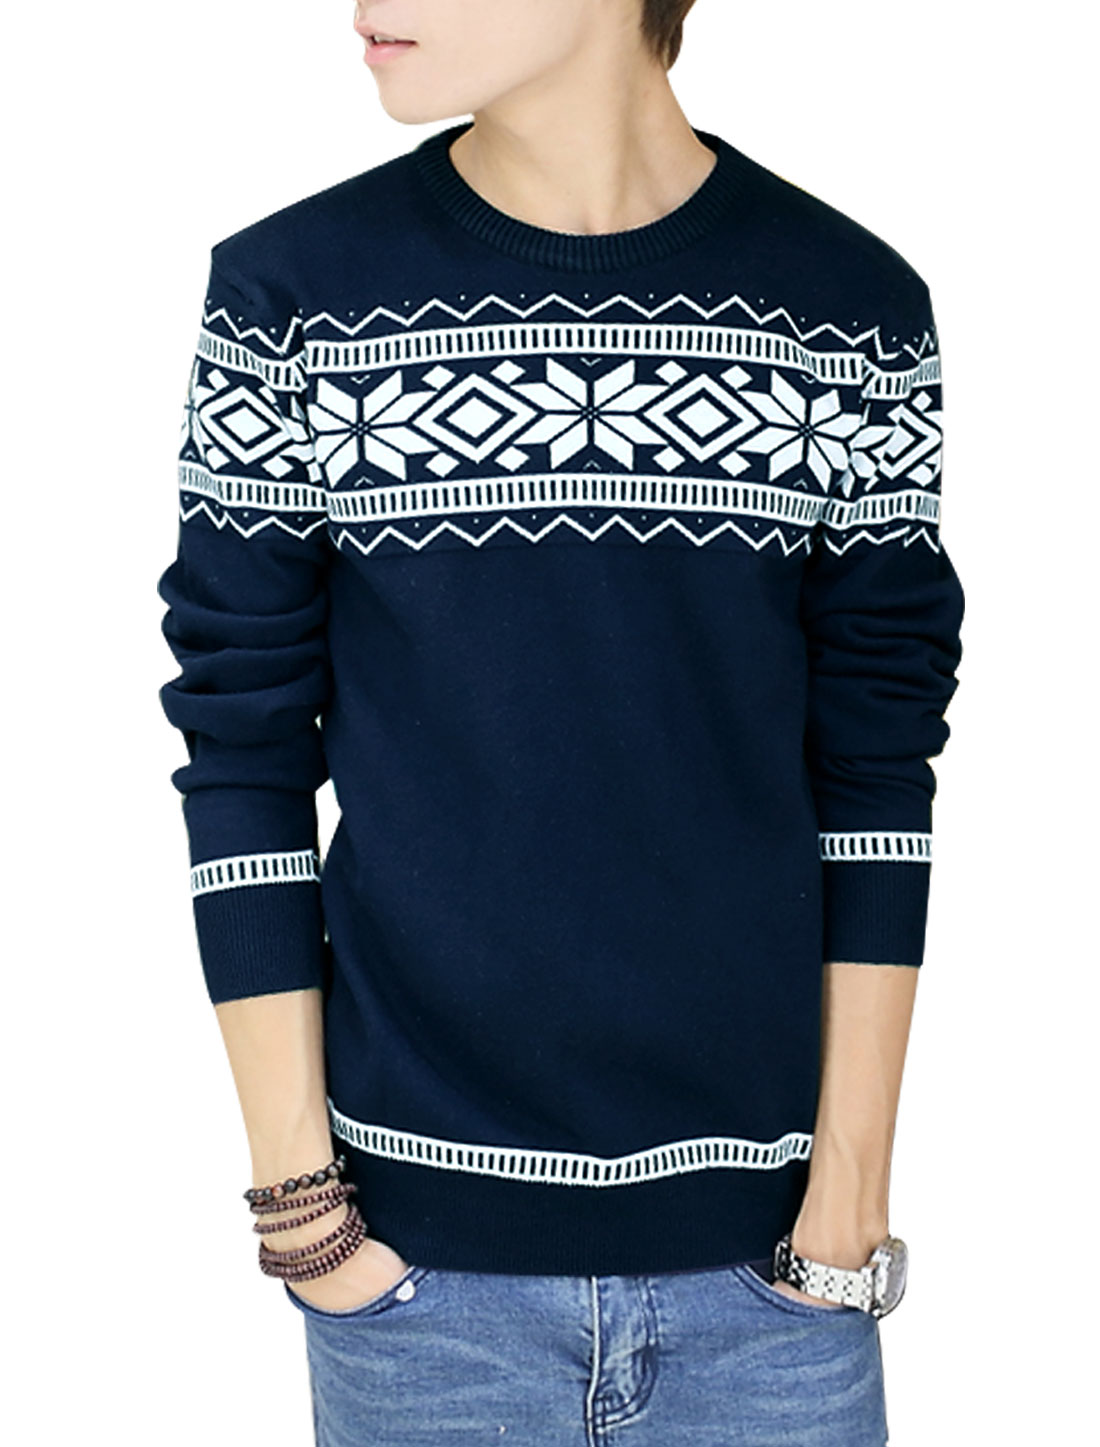 Men Slipover Geometric Zig-Zag Pattern Casual Knit Shirt Navy Blue M